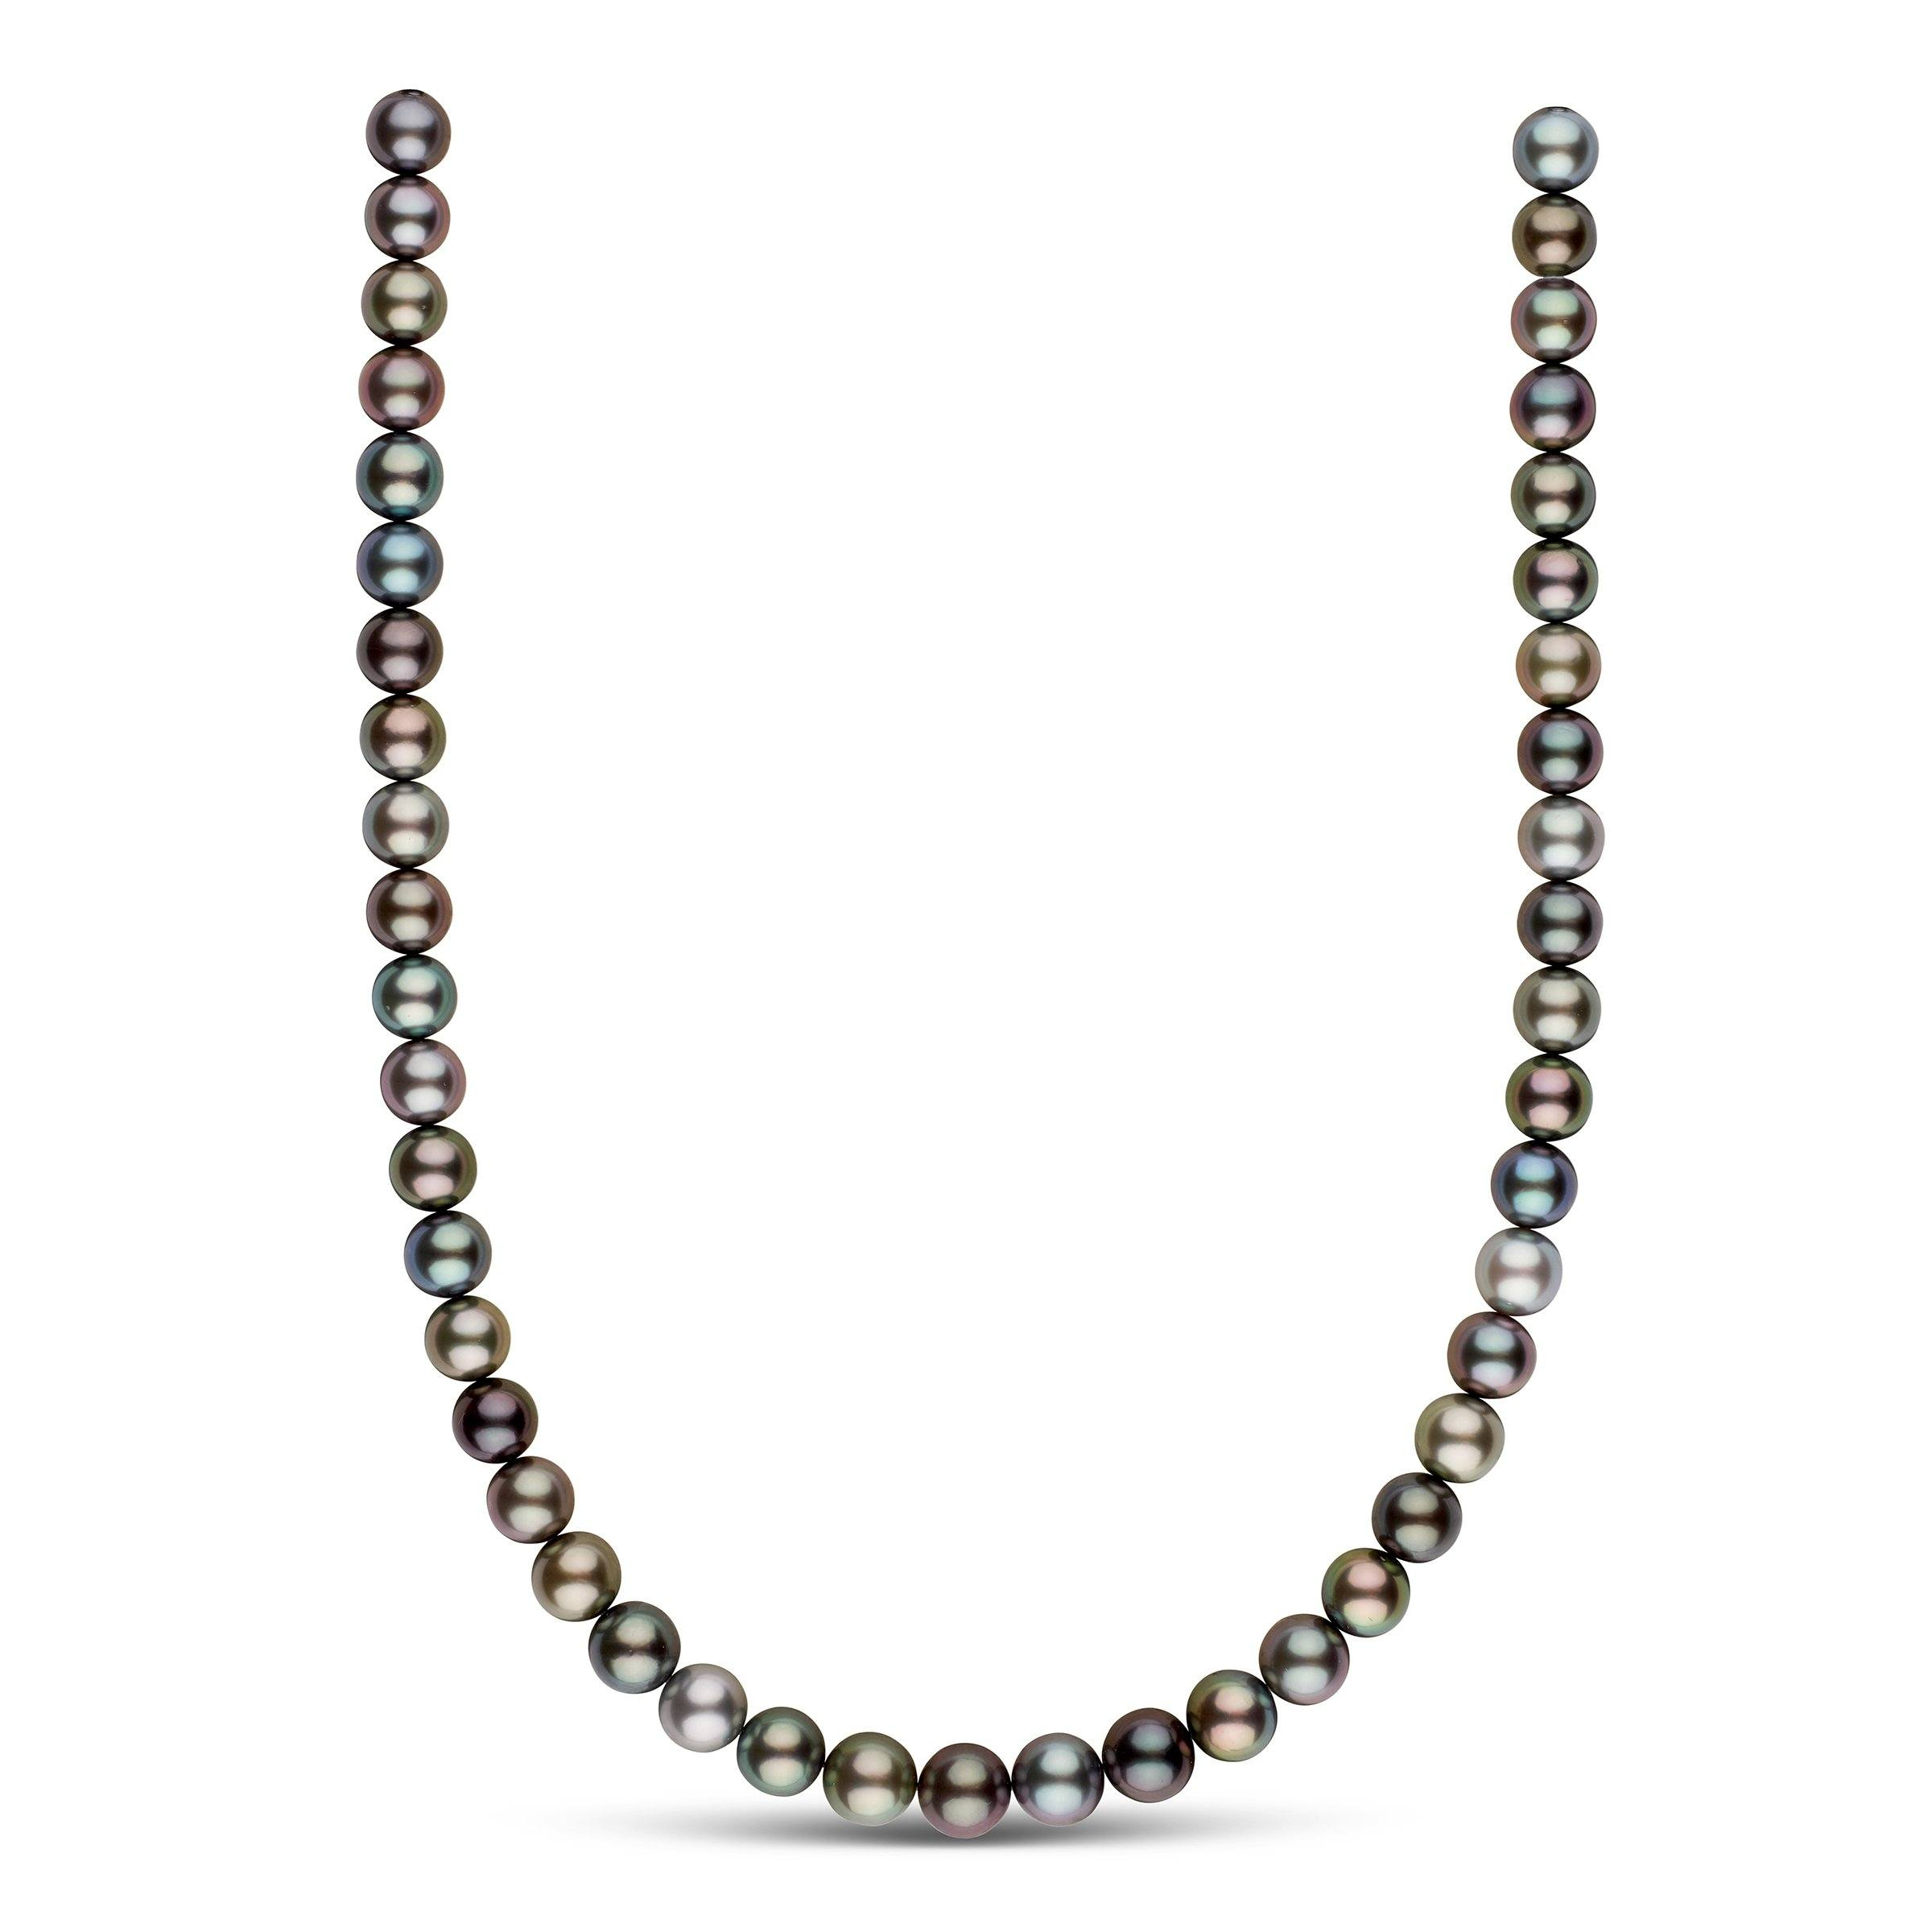 9.0-10.0 mm AA+/AAA Tahitian Round Pearl Necklace